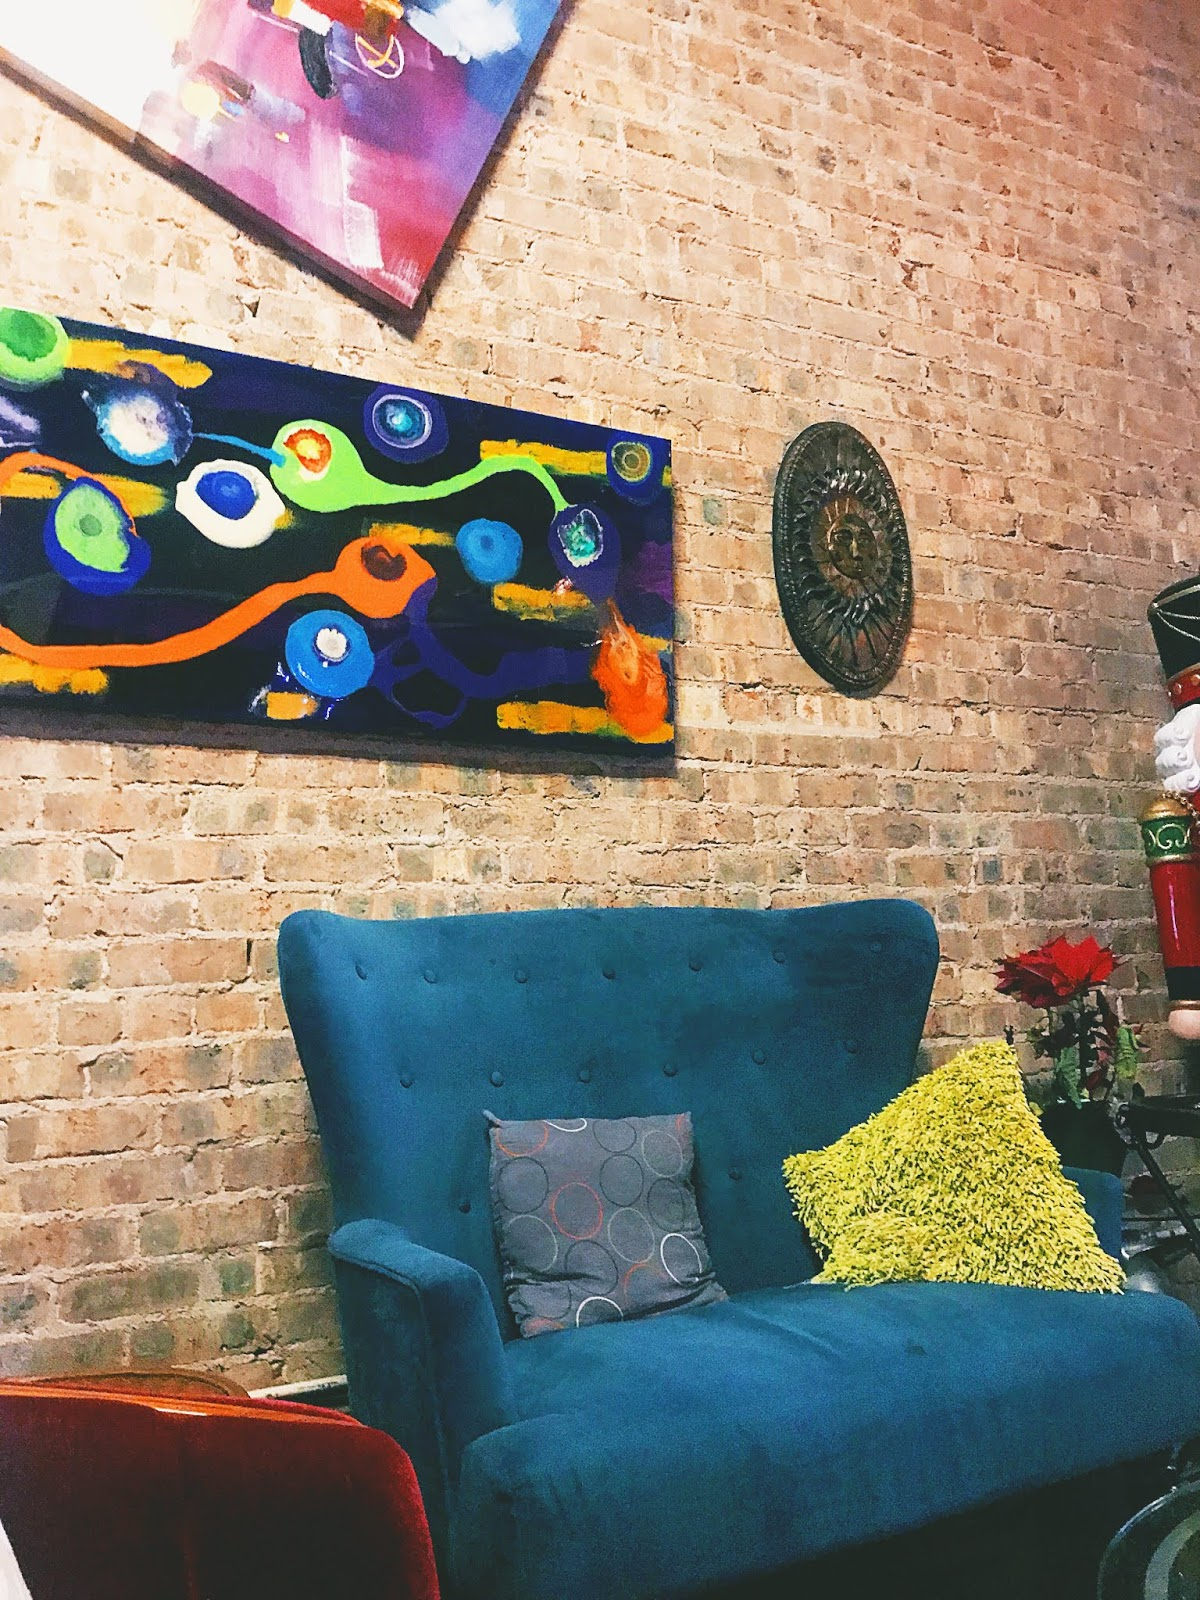 Travel Guide: Visiting Retro 521 Coffee Cafe & Venue In Shreveport, Bossier!